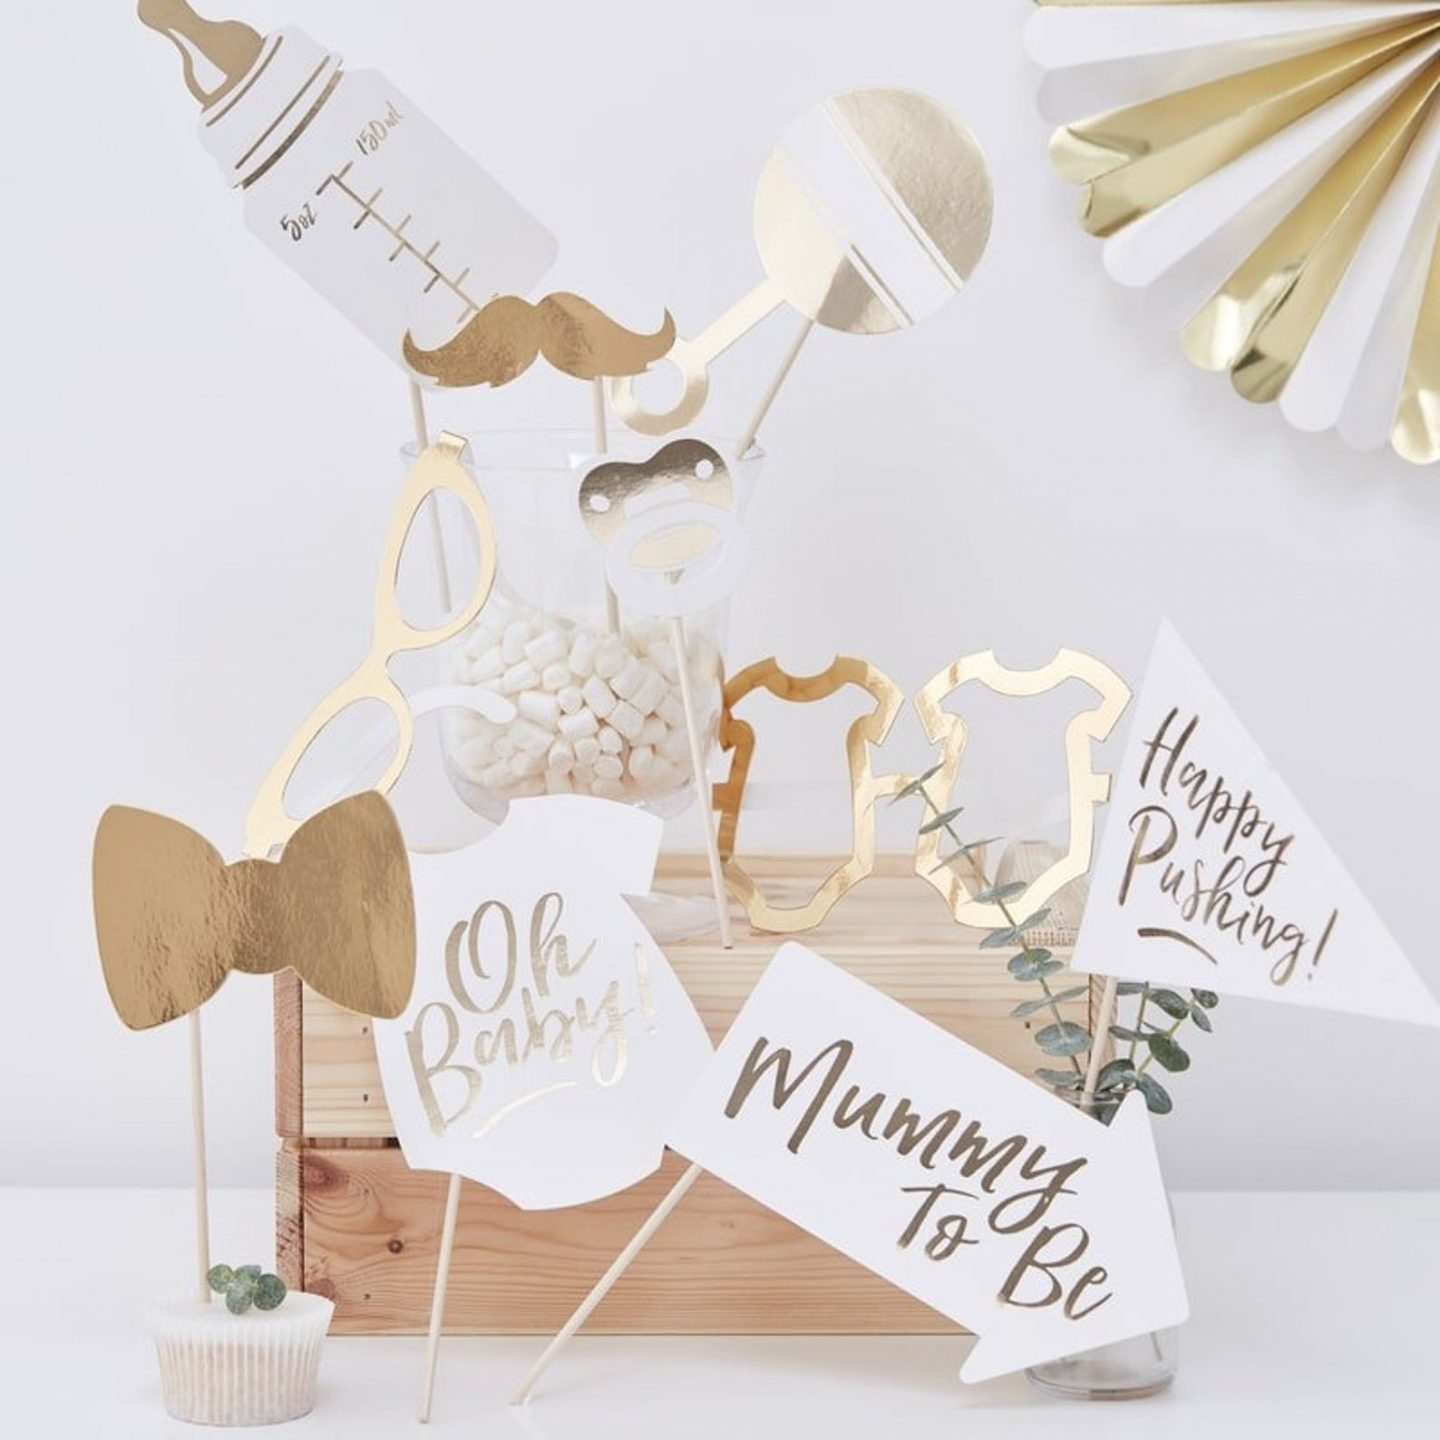 Baby shower photo props in white and gold